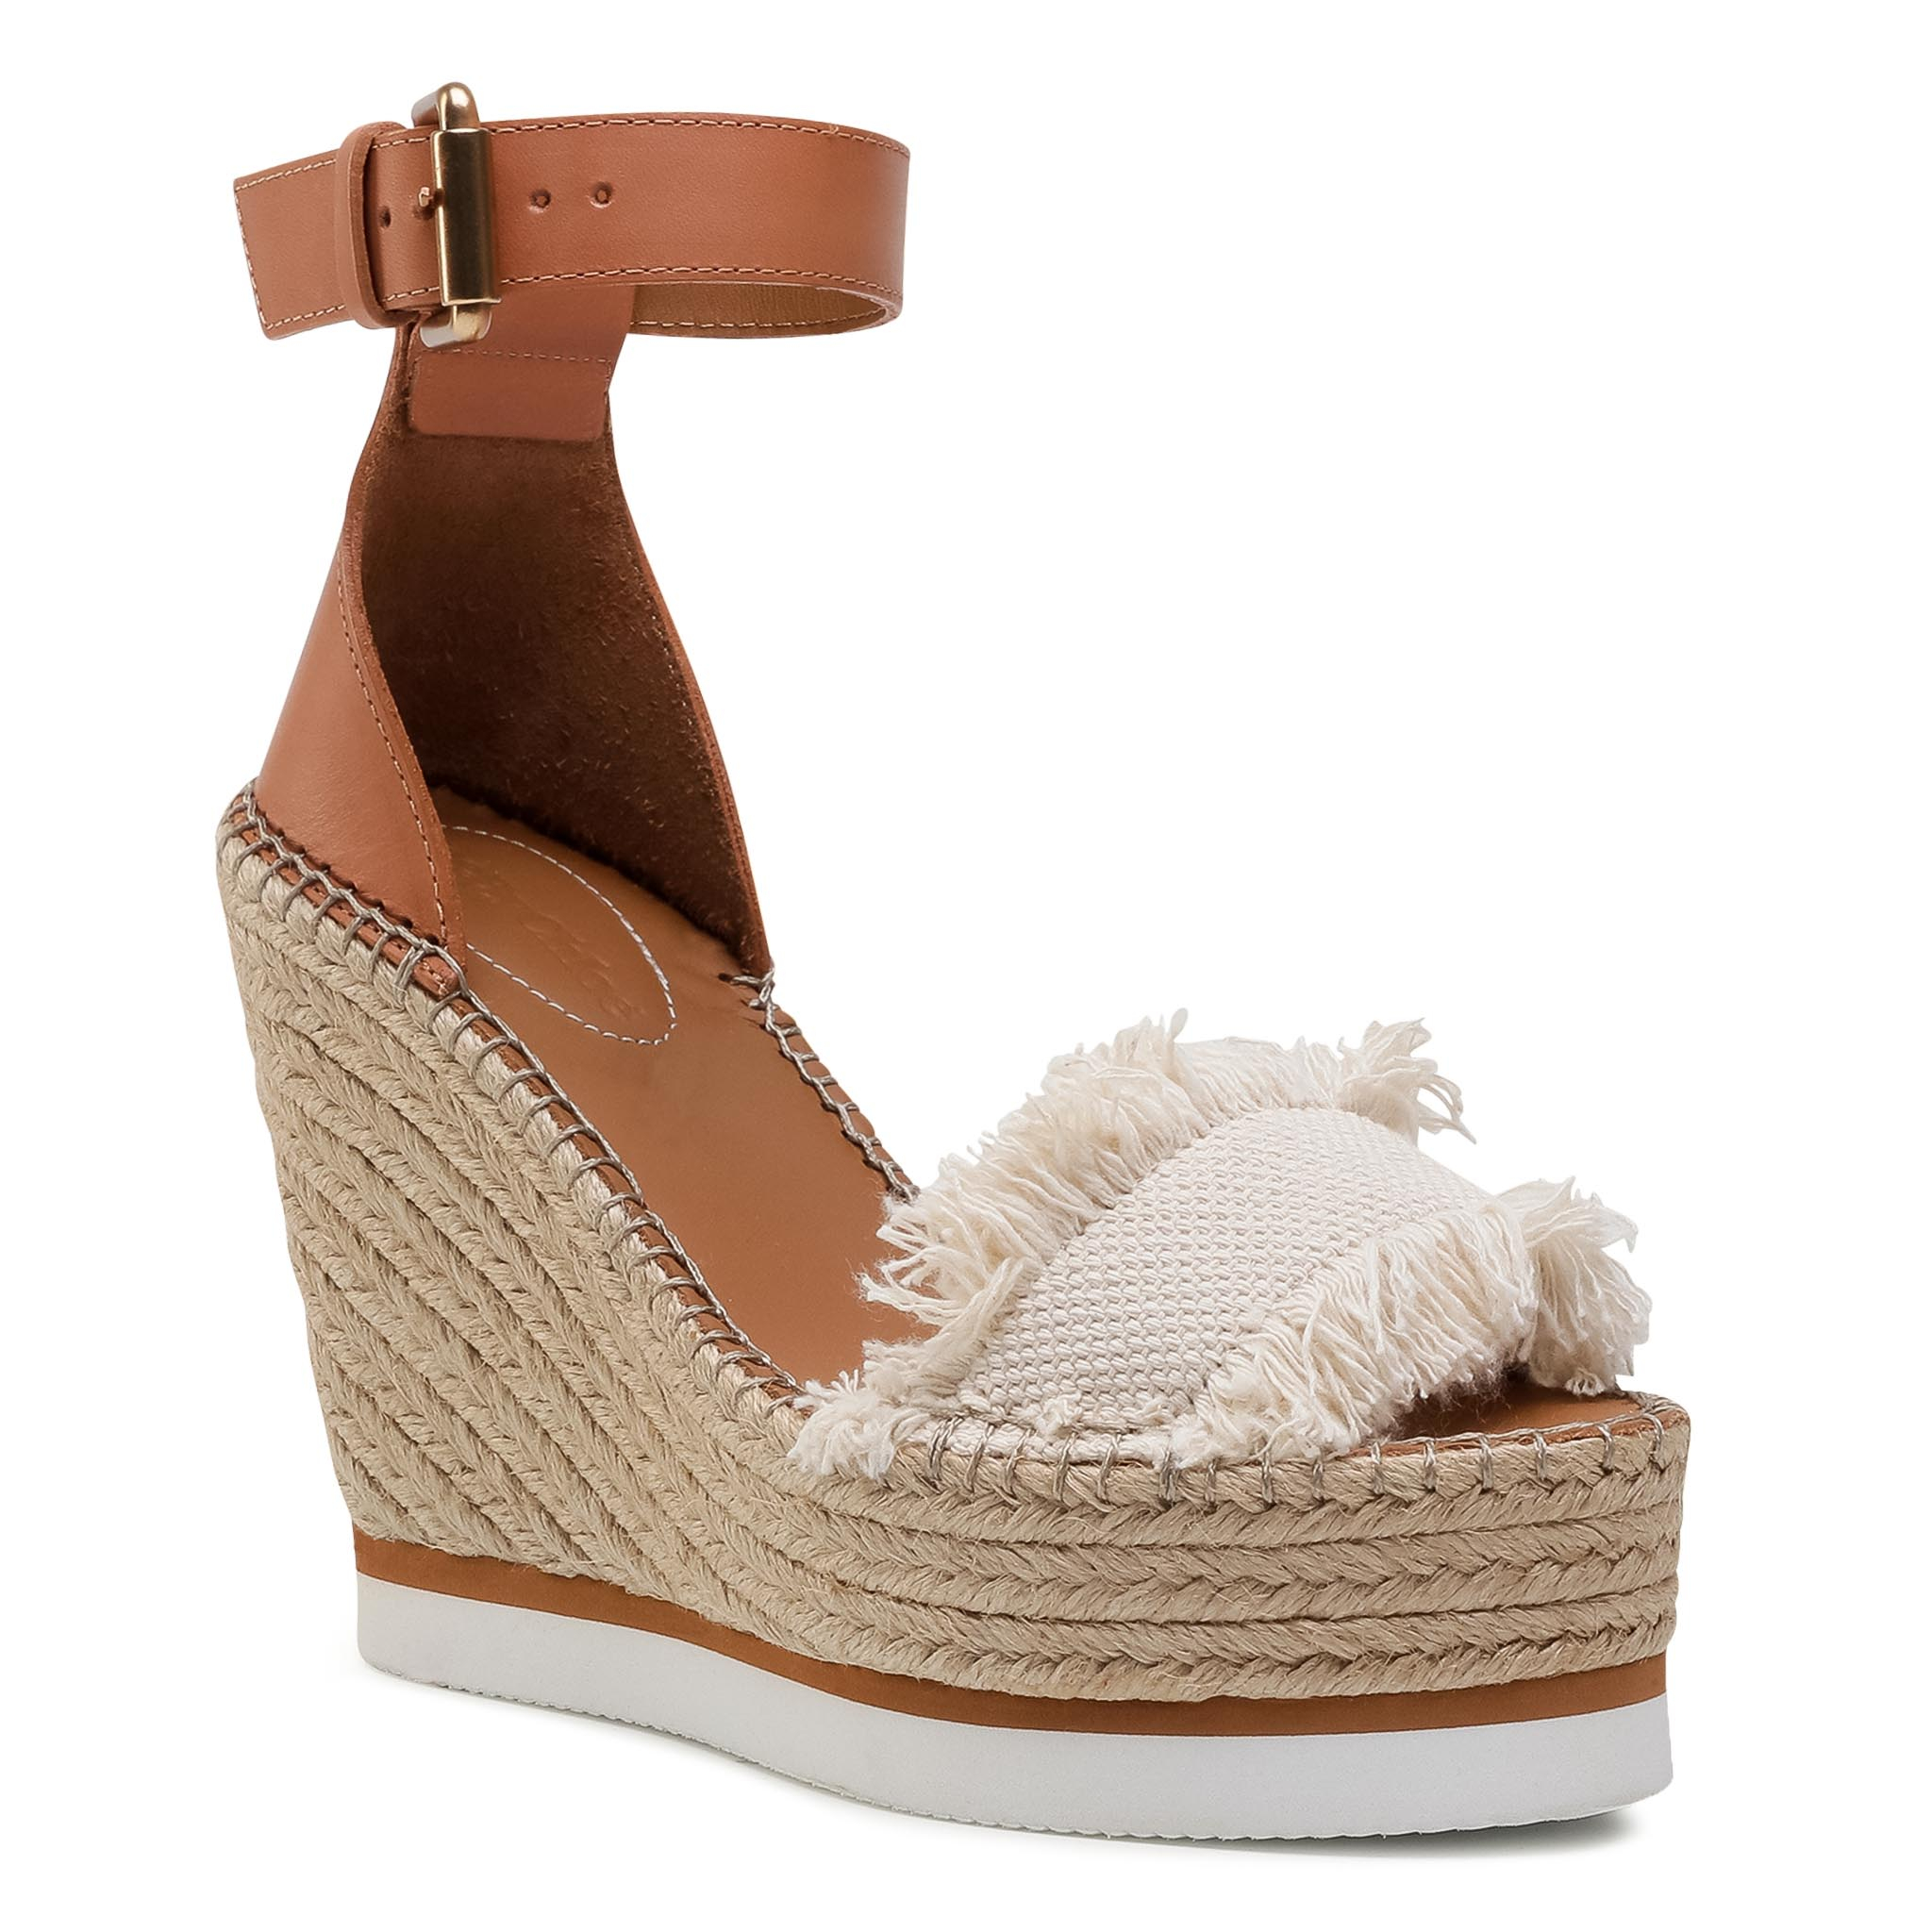 Image of Espadrillas SEE BY CHLOÉ - SB28152 Natural 120/Light 517